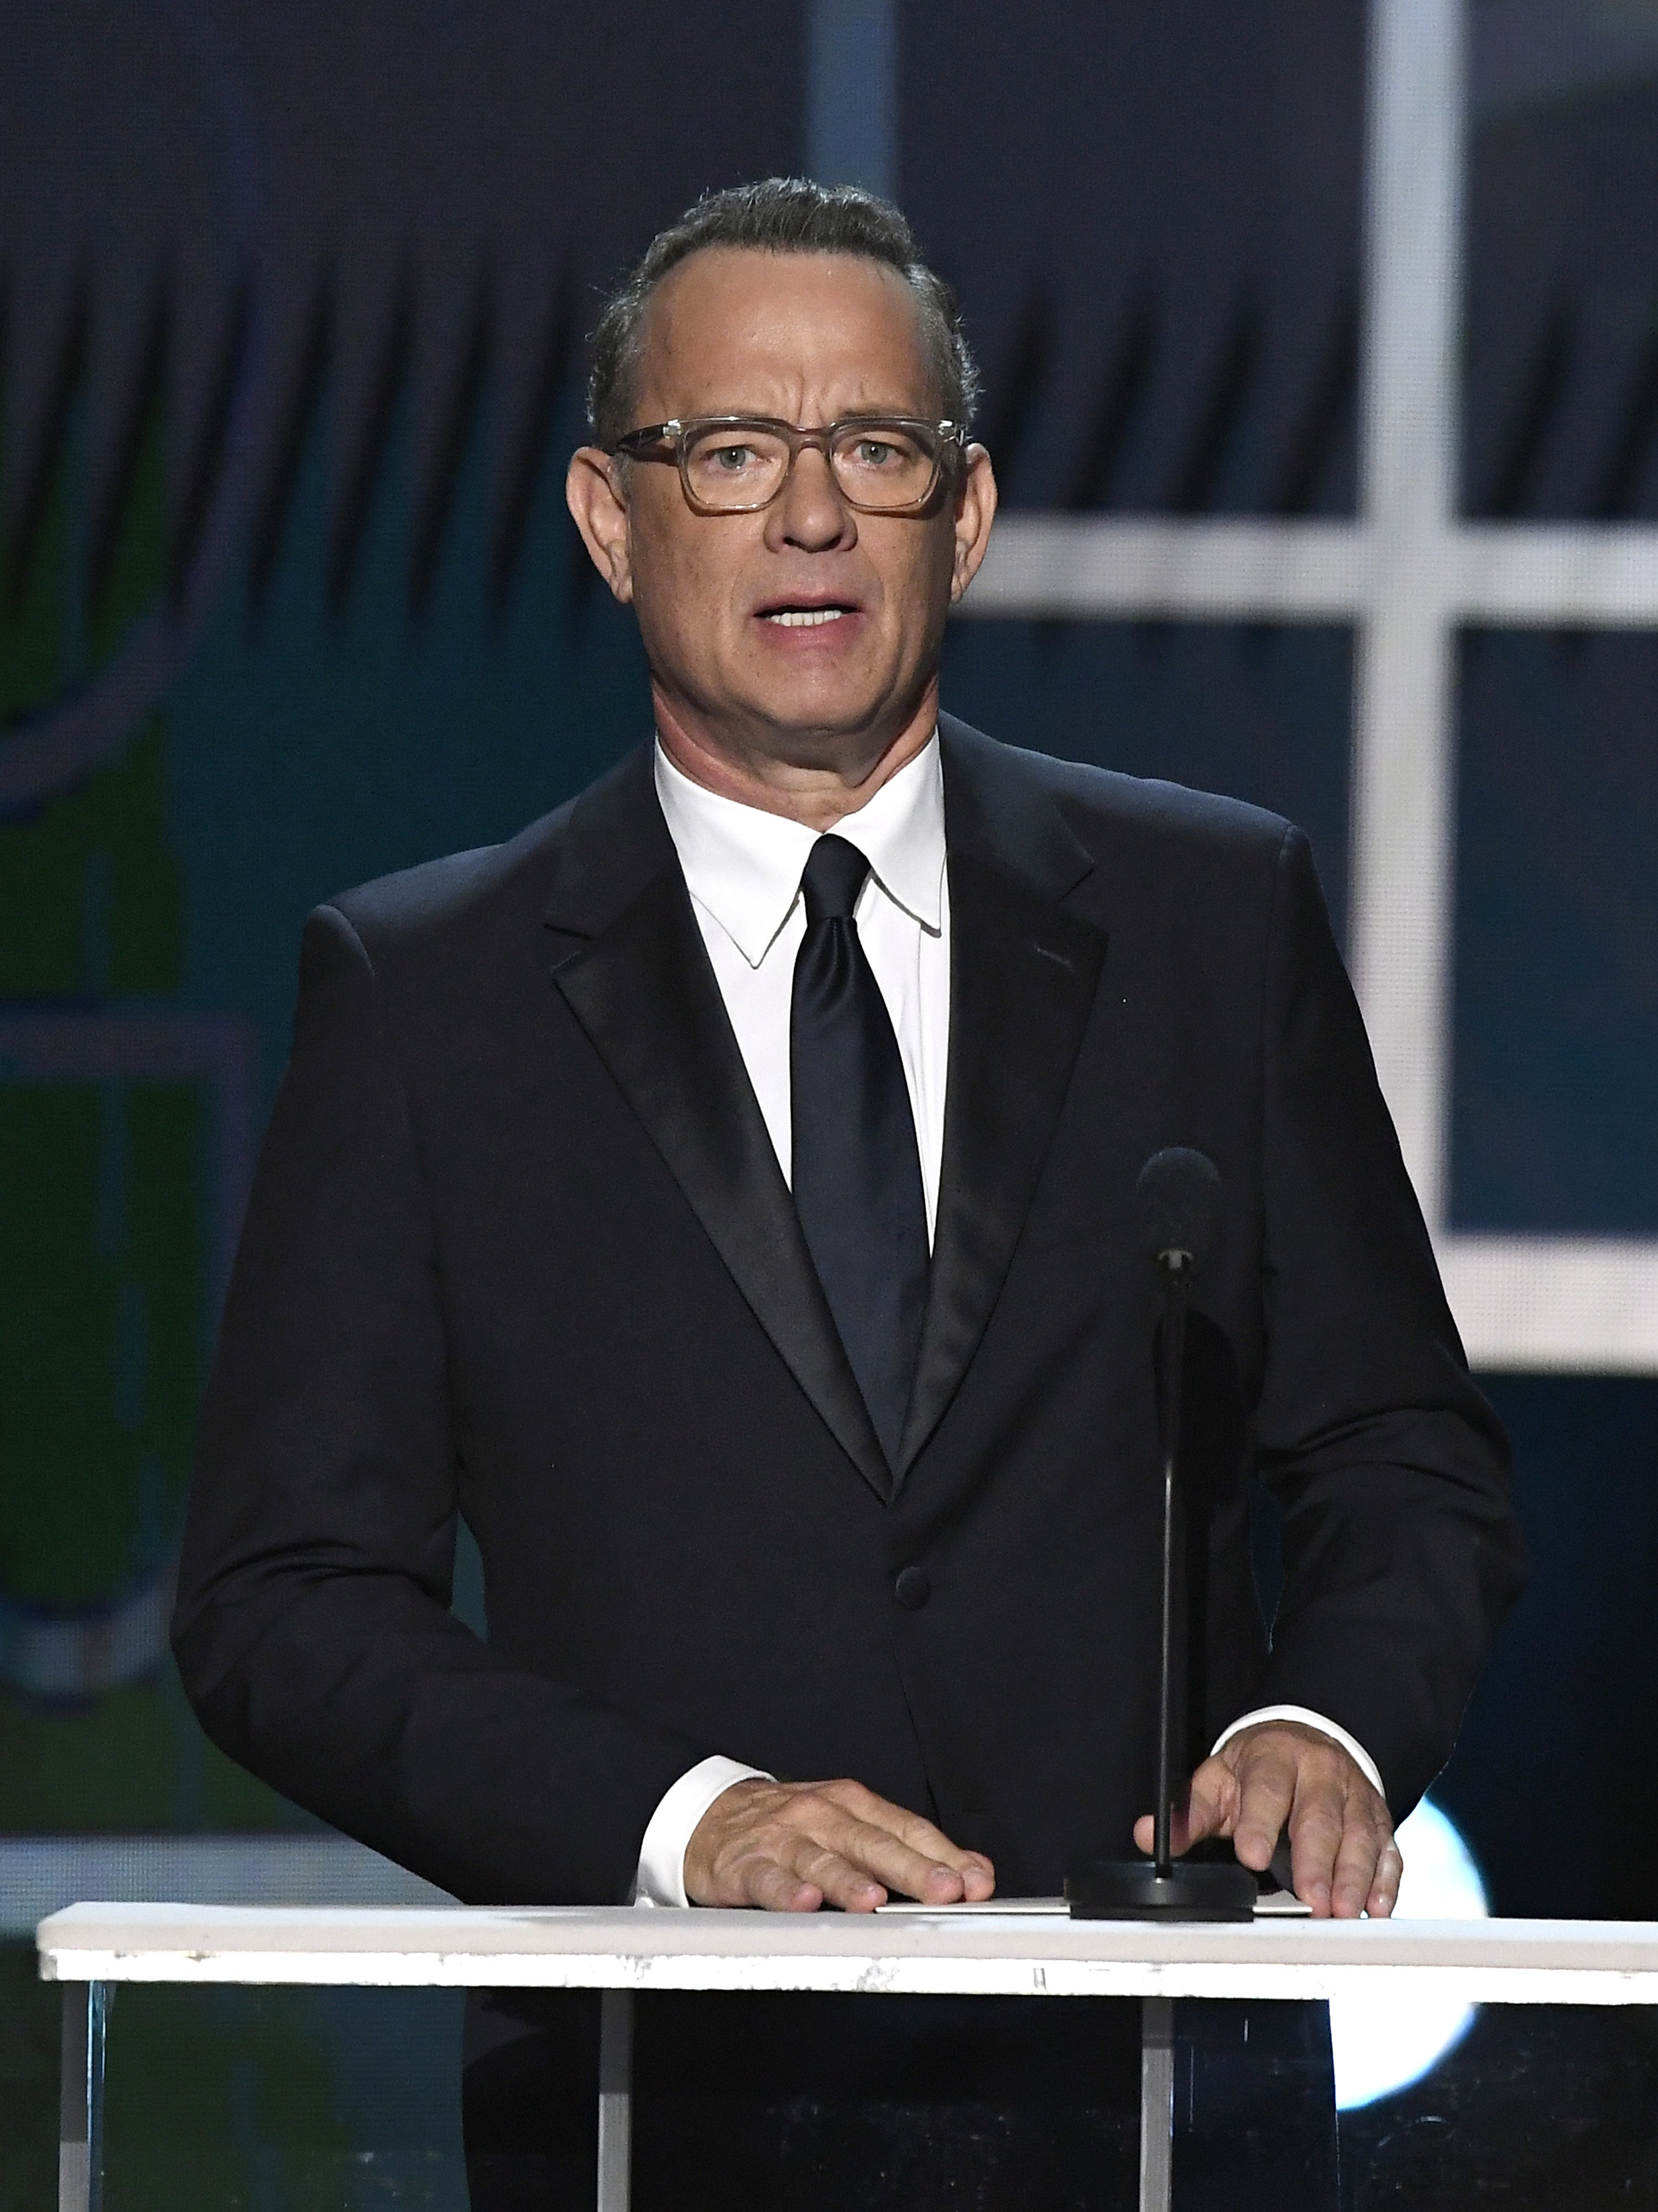 Tom Hanks speaks during the 26th Annual Screen ActorsGuild Awards on January 19, 2020, in Los Angeles, California. | Source: Getty Images.